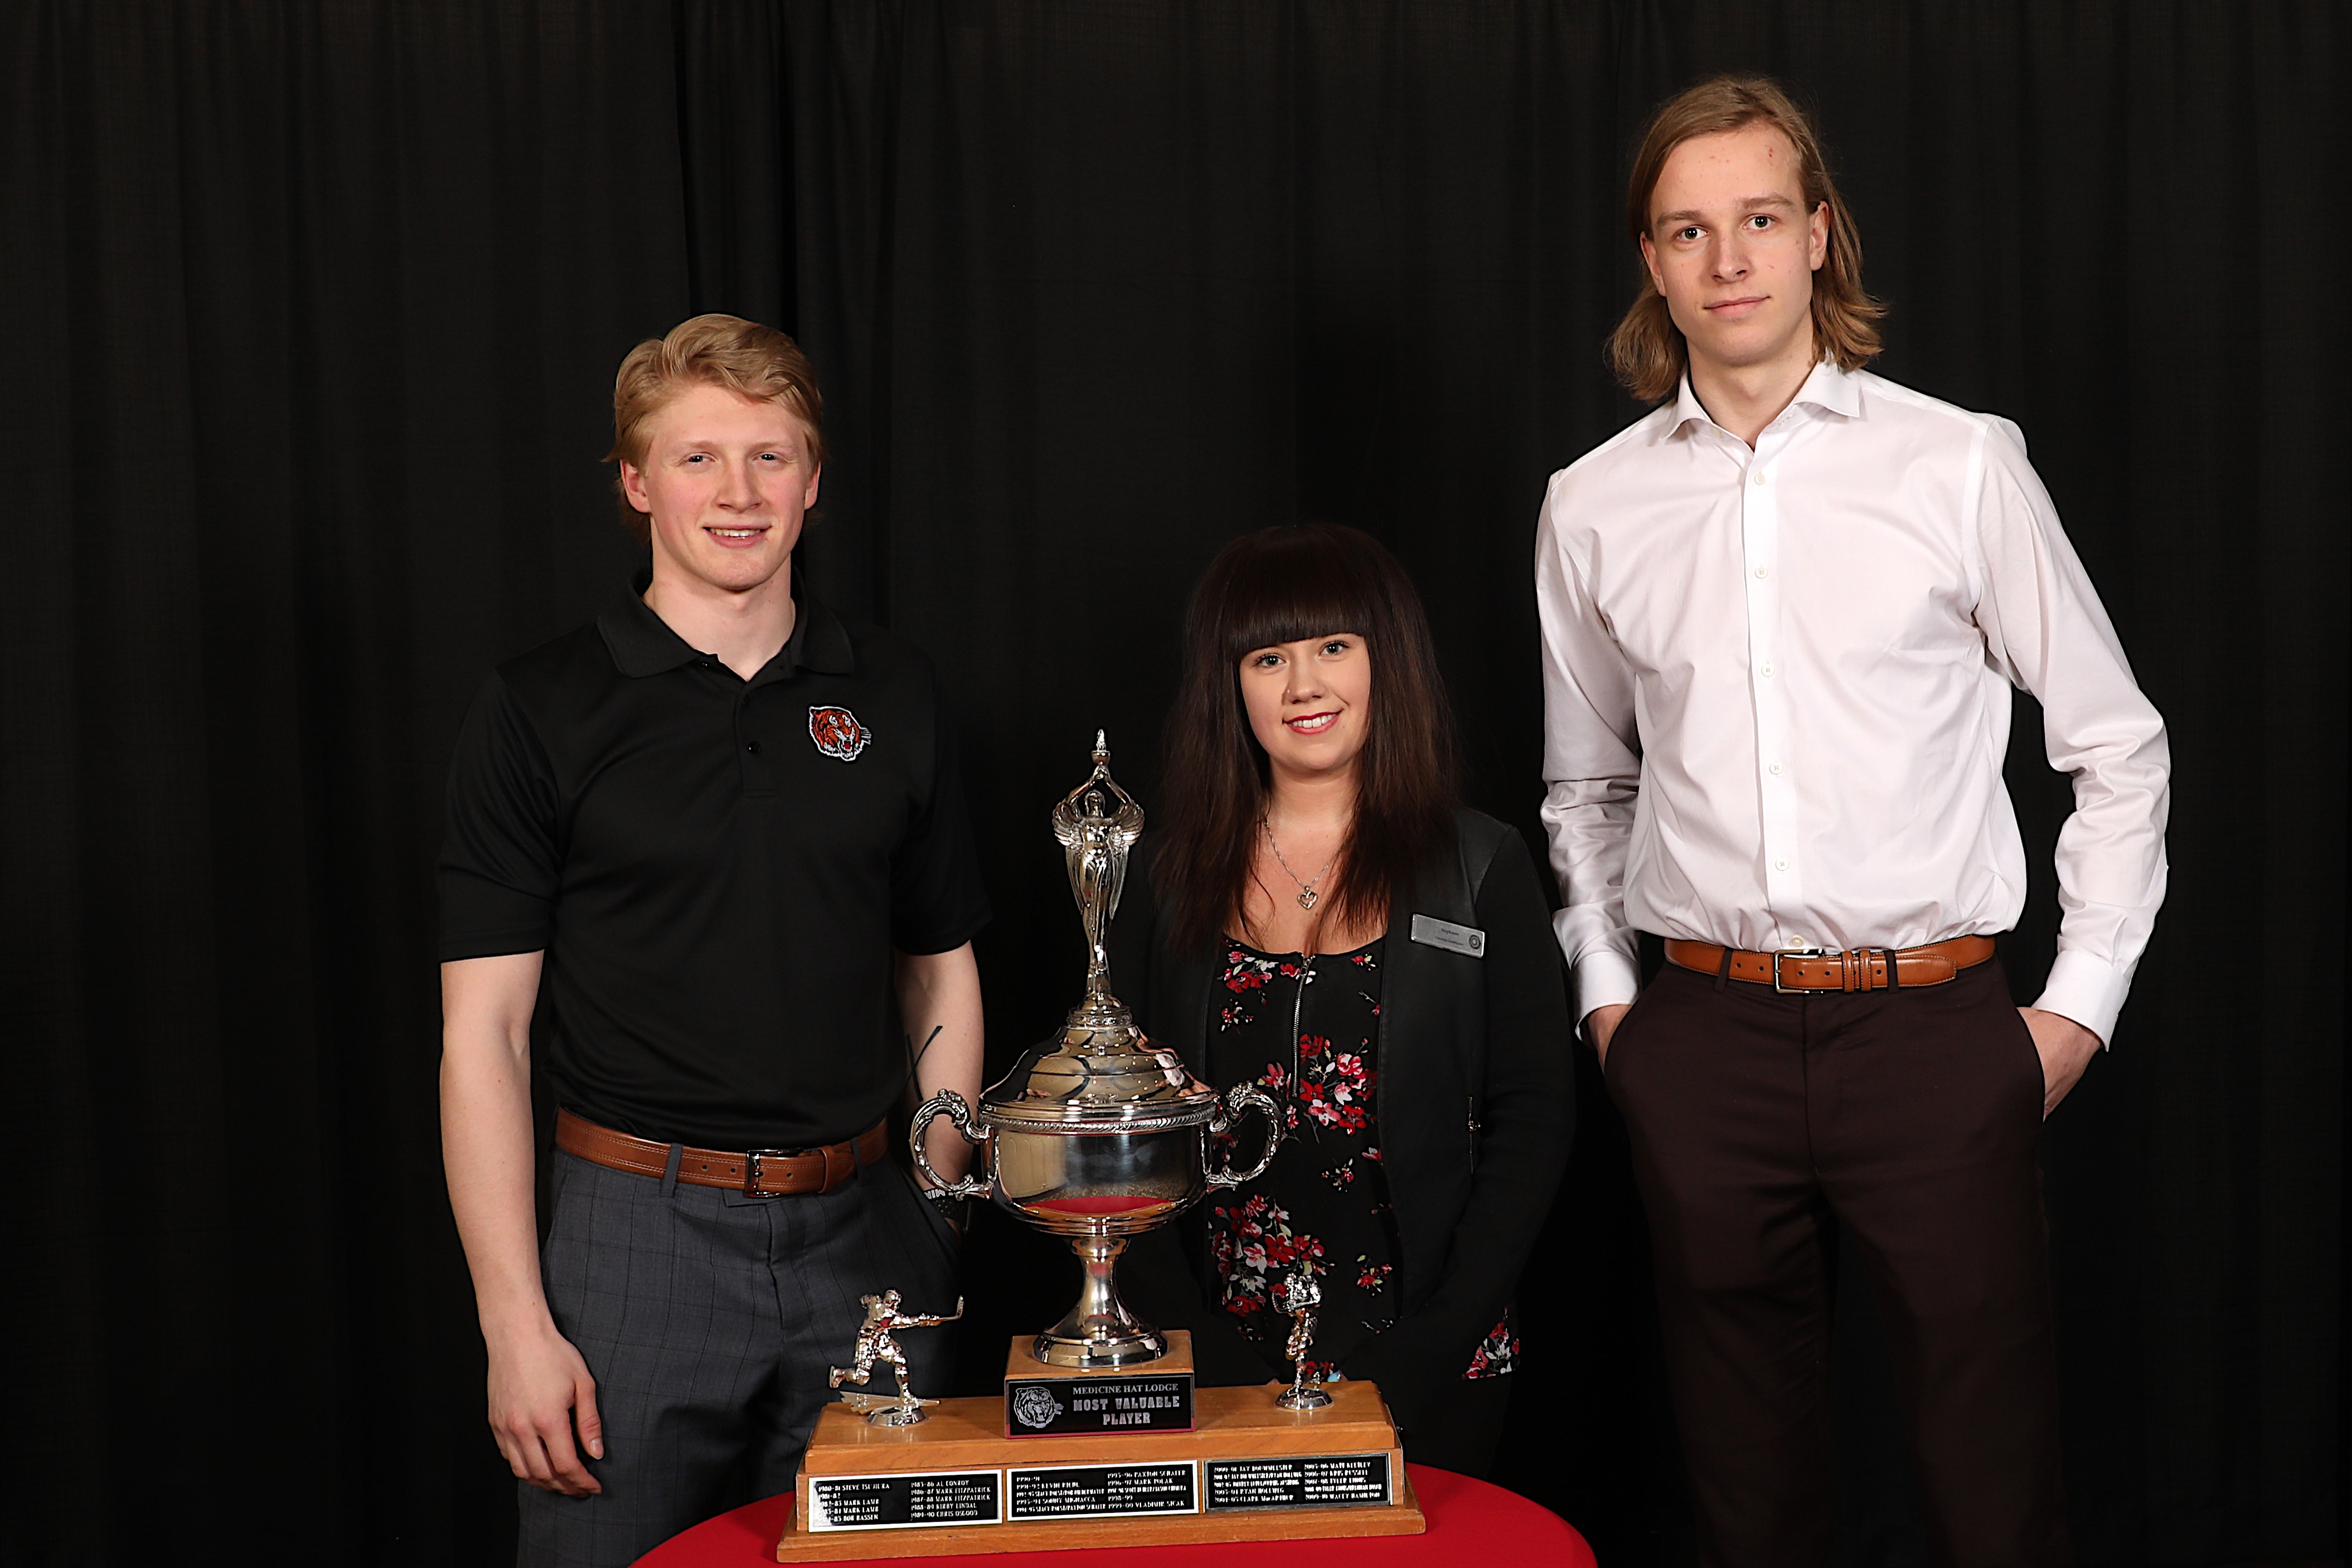 Stephanie Fraser of the Medicine Hat Lodge presented the Medicine Hat Lodge Most Valuable Player to Mads Søgaard & James Hamblin